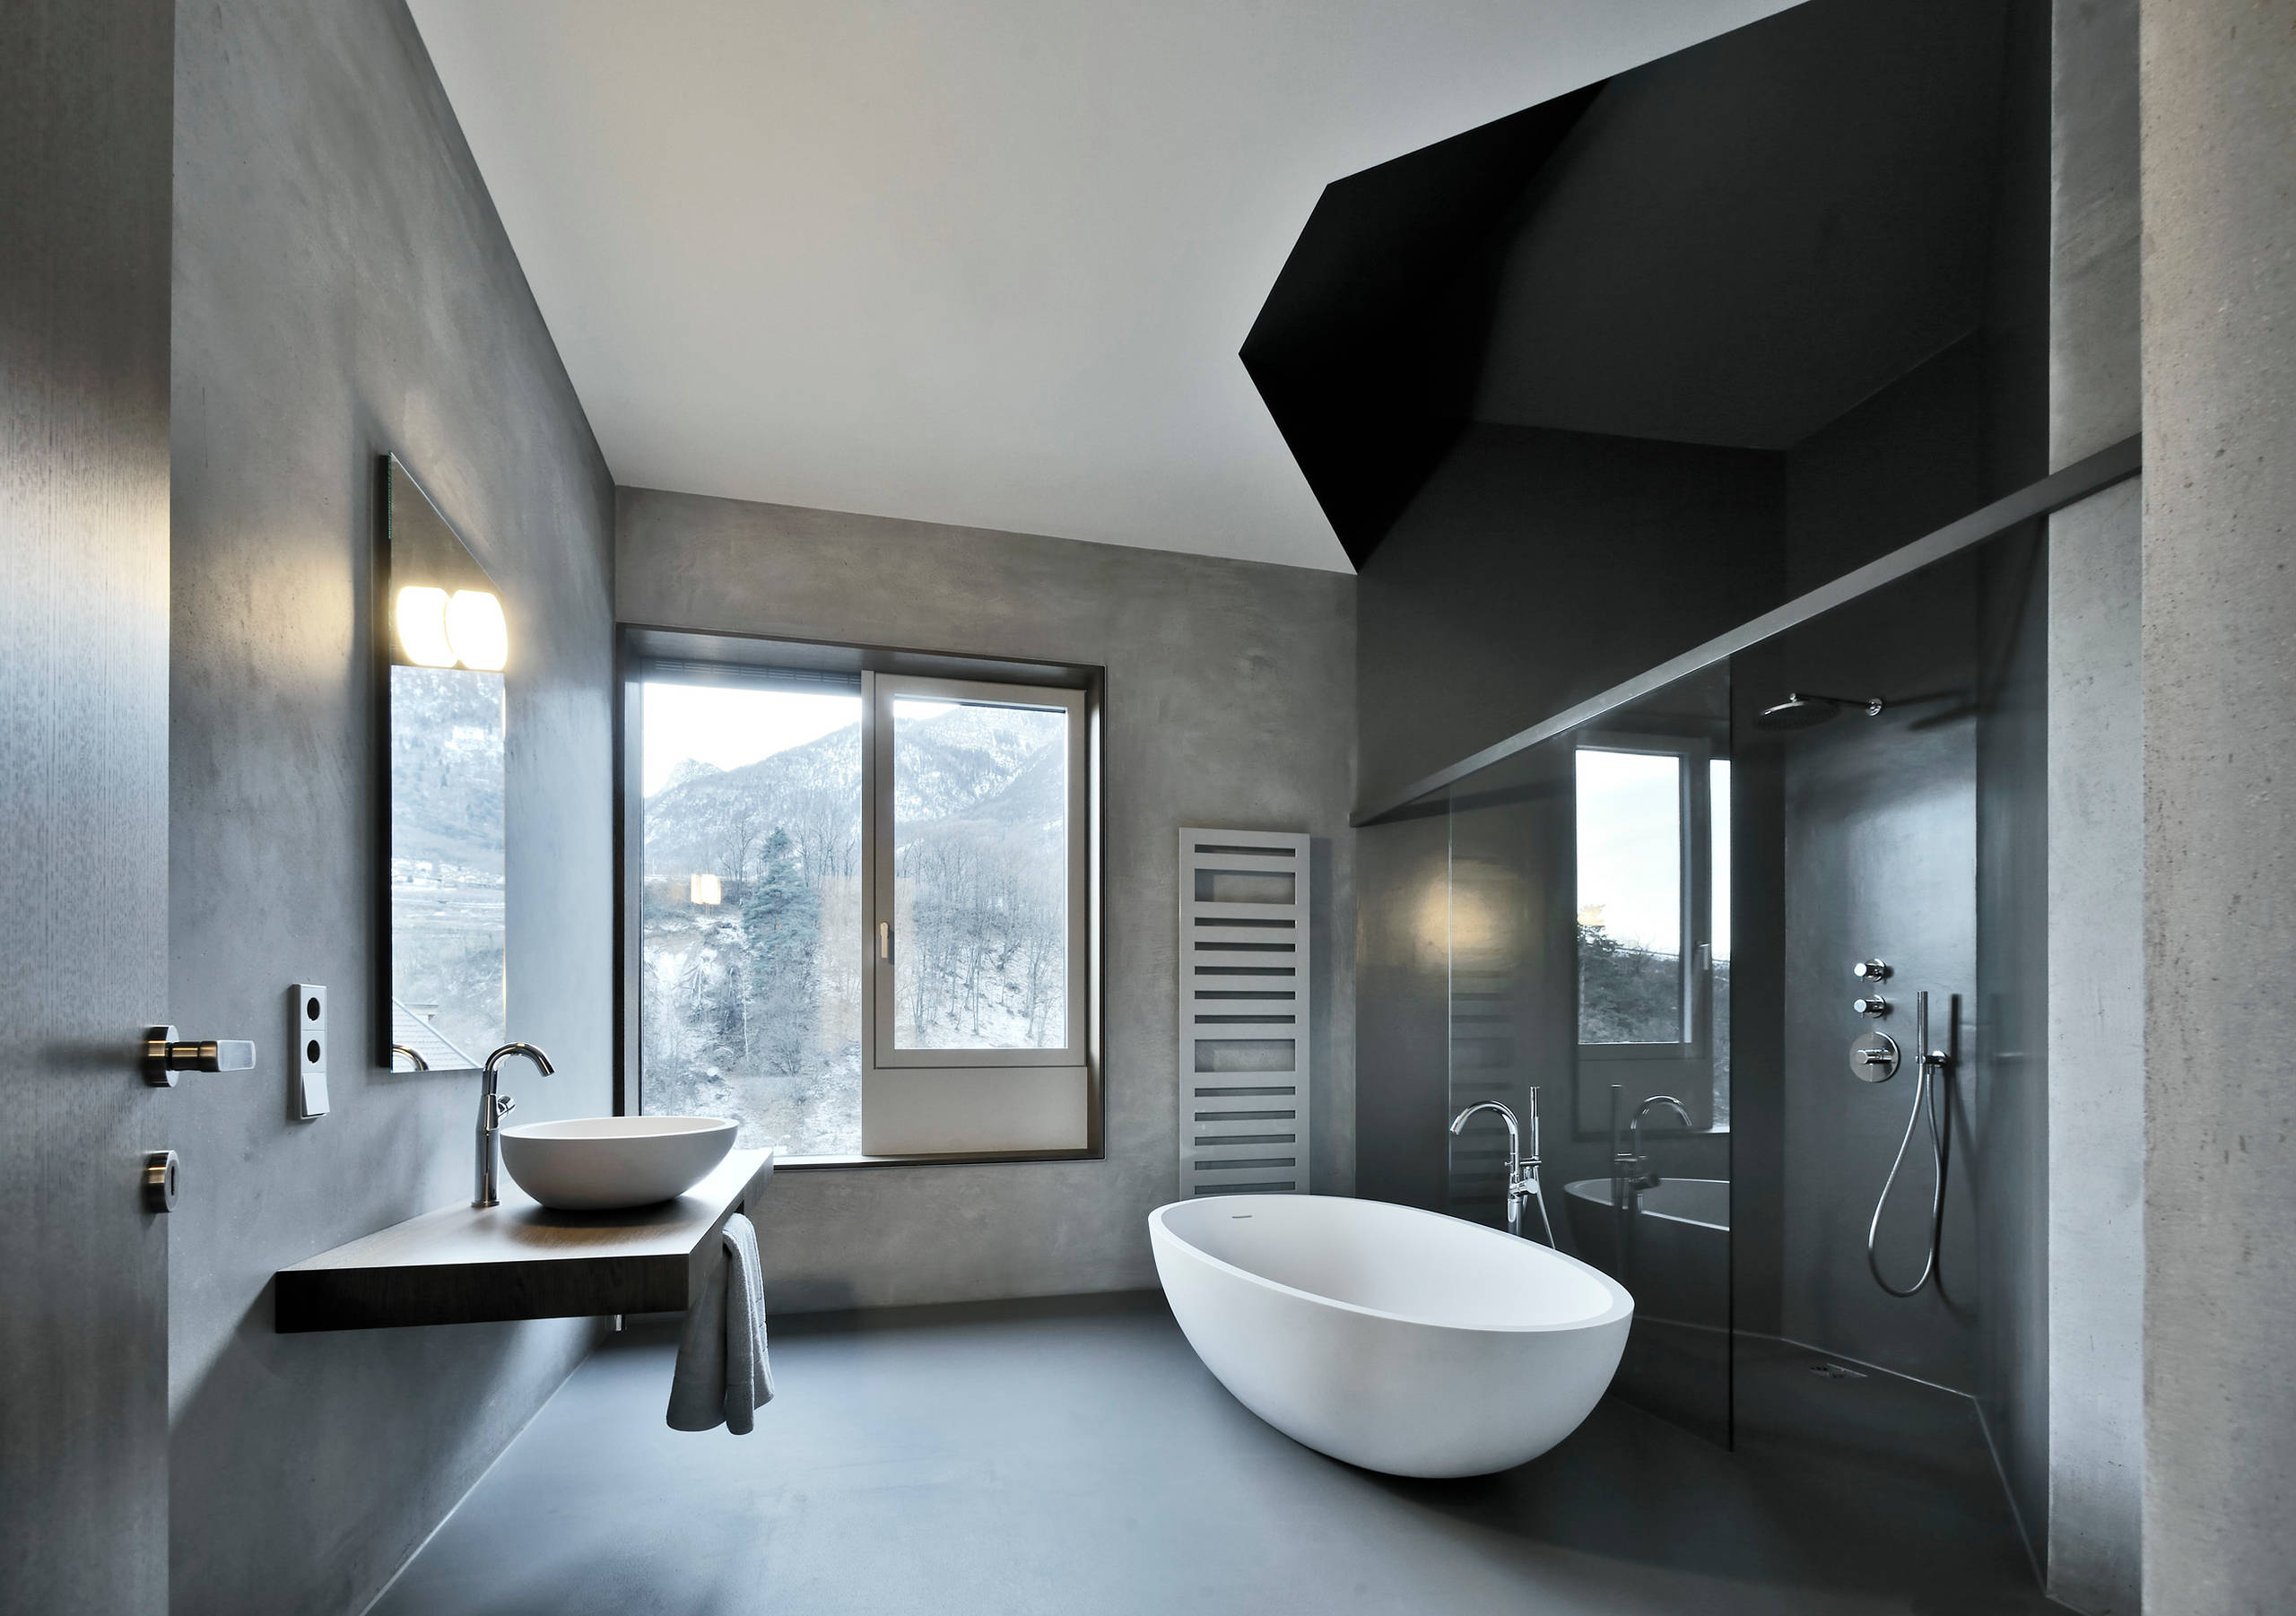 title | Bathroom interior design